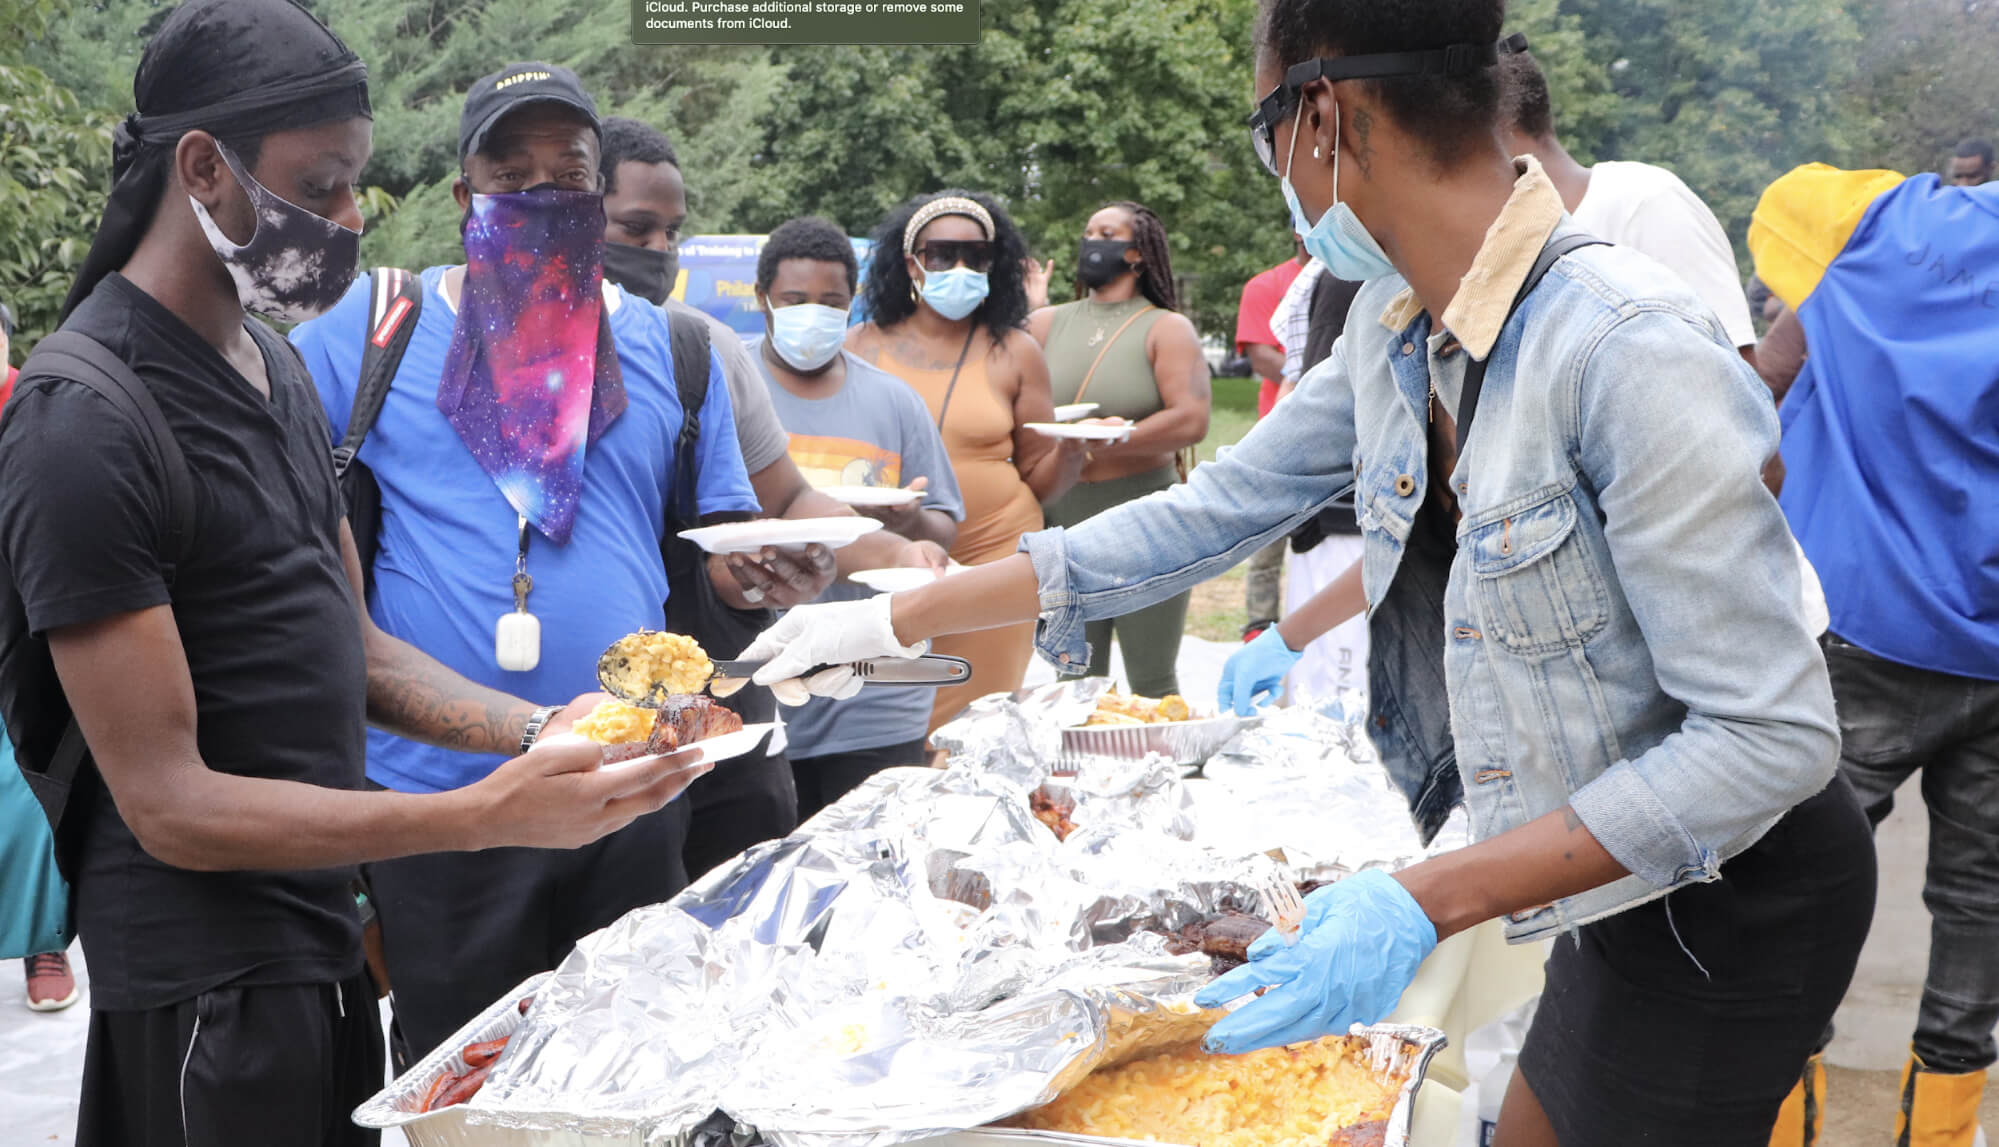 Food Distribution by students in Philadelphia